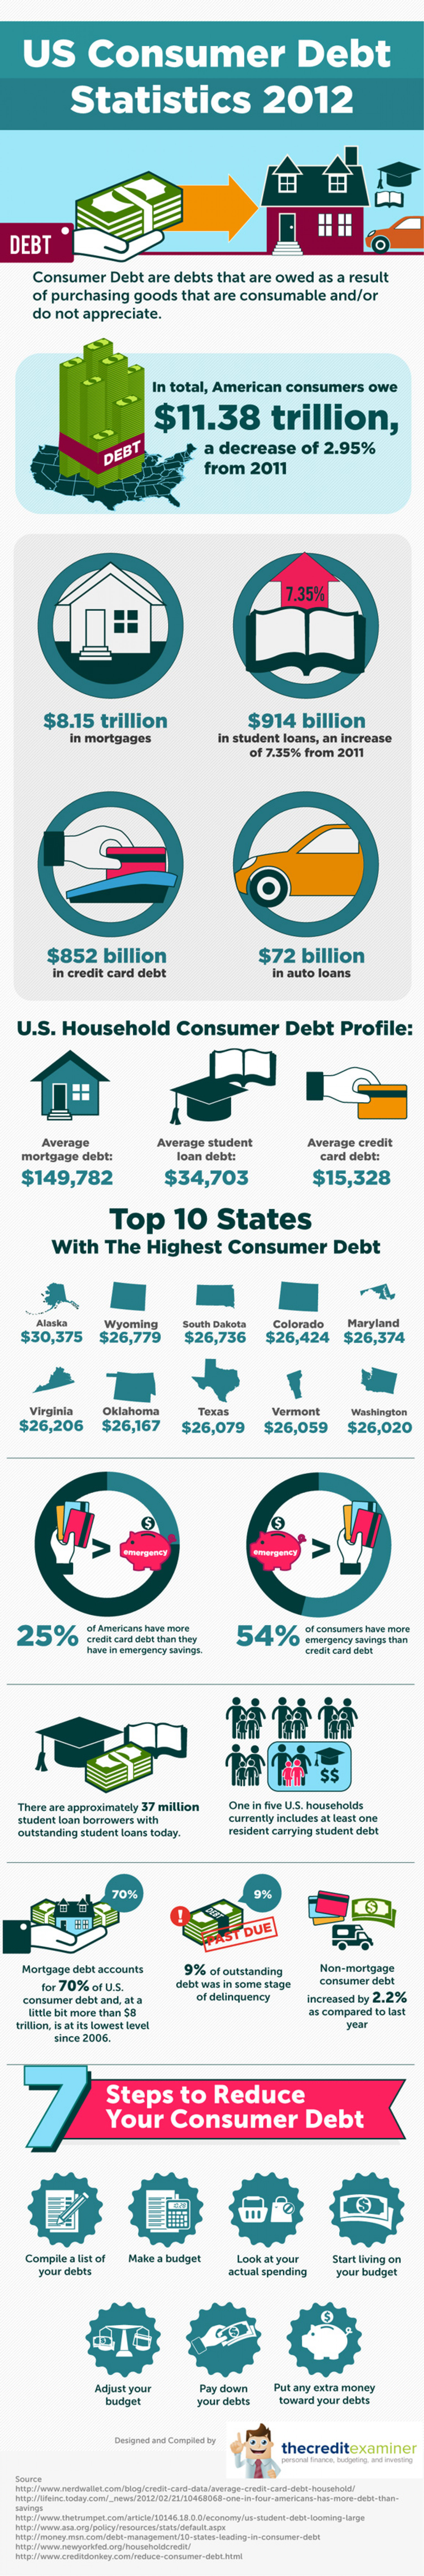 US Consumer Debt Statistics and Trends  Infographic